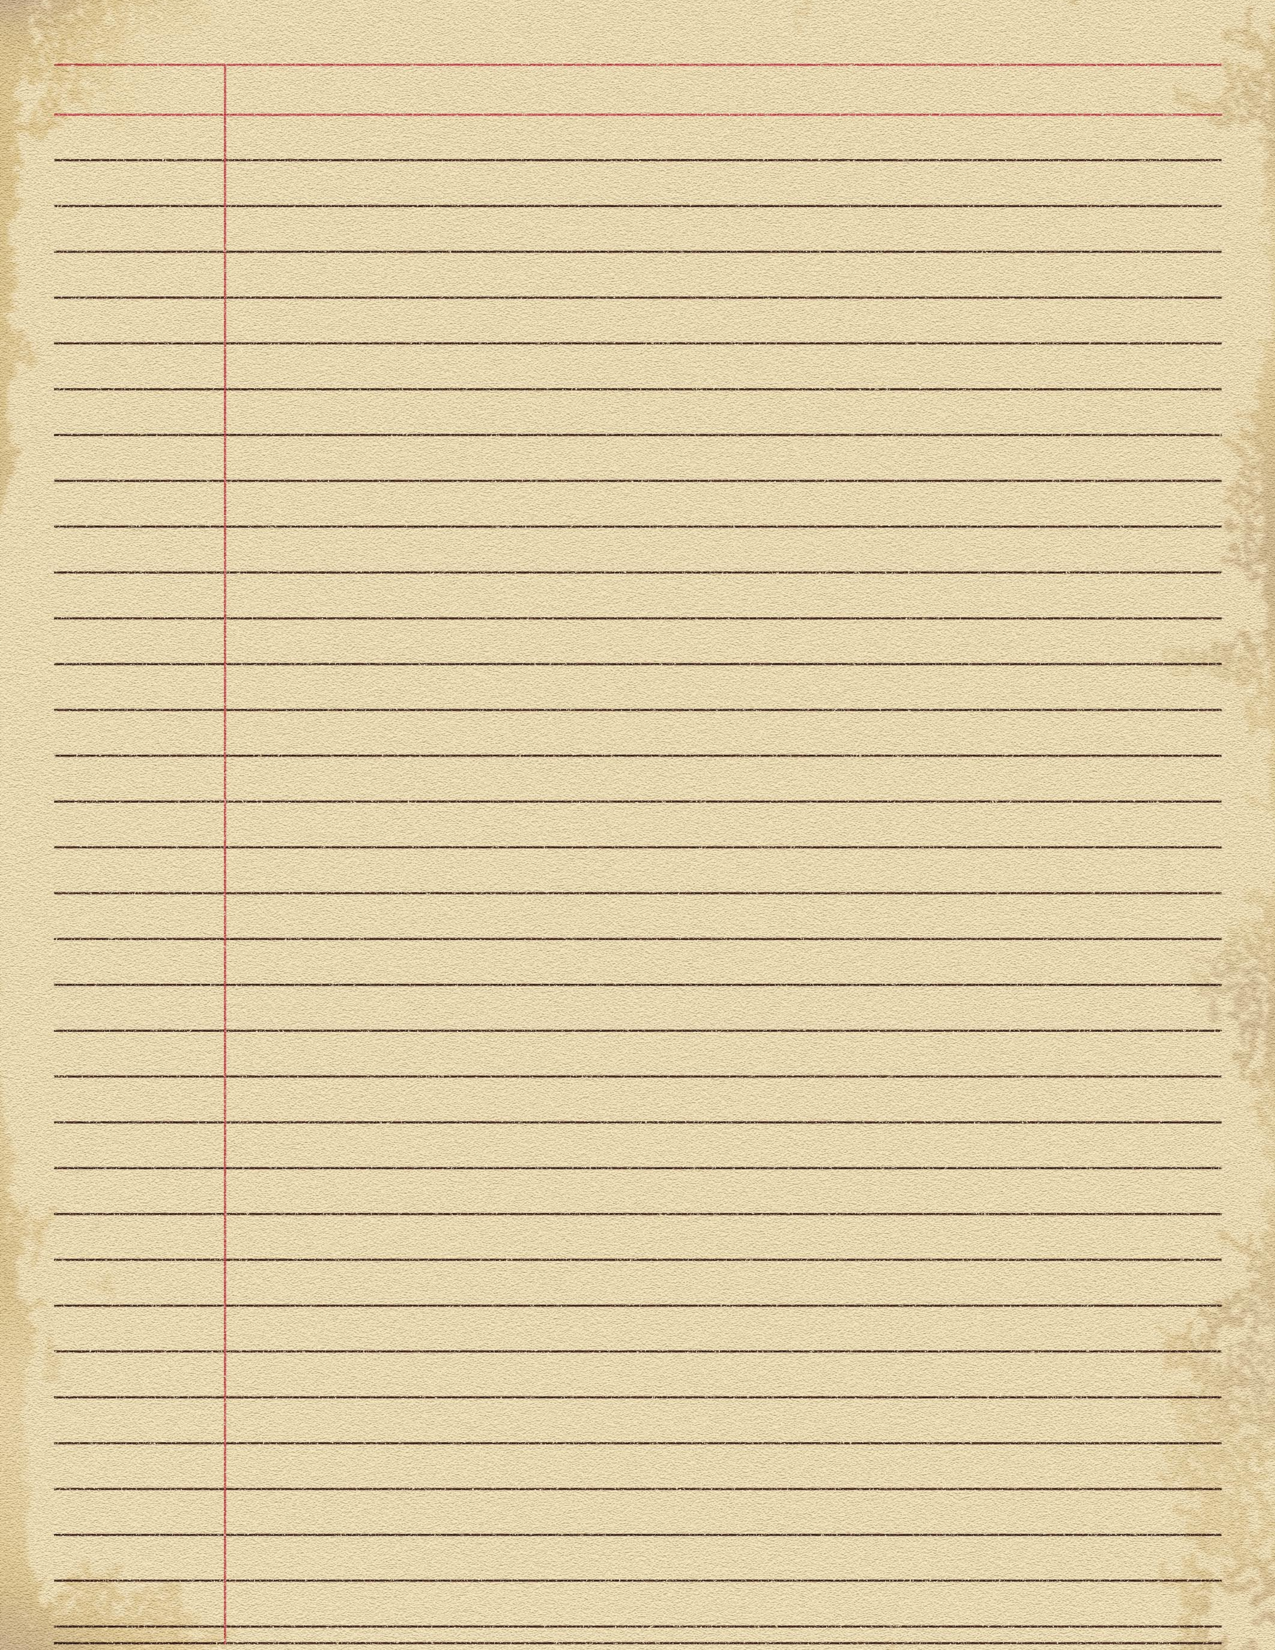 Notebook Paper Wallpaper WallpaperSafari – Yellow Notebook Paper Background